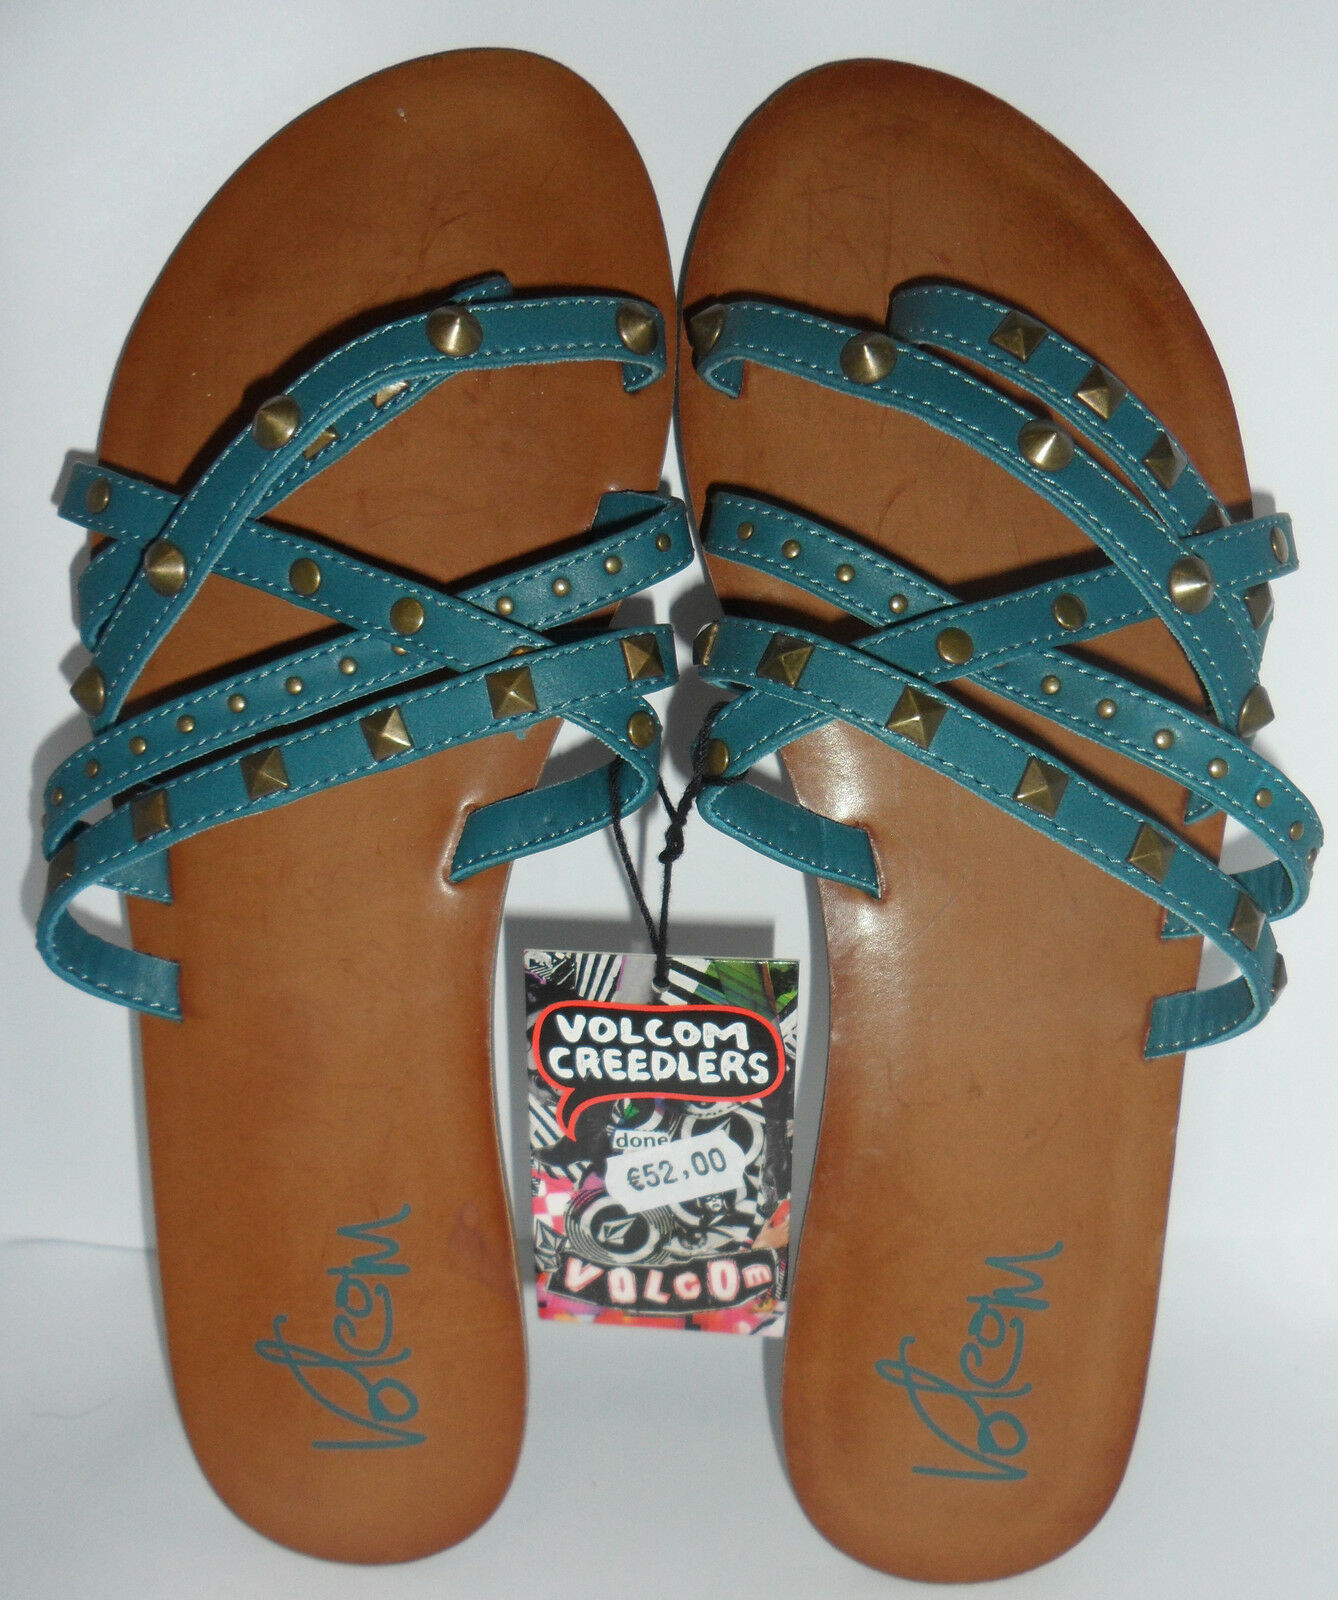 Sandali donna VOLCOM Creedlers turquoise Here to Stay cod. W0811254 turquoise Creedlers blue d7280d